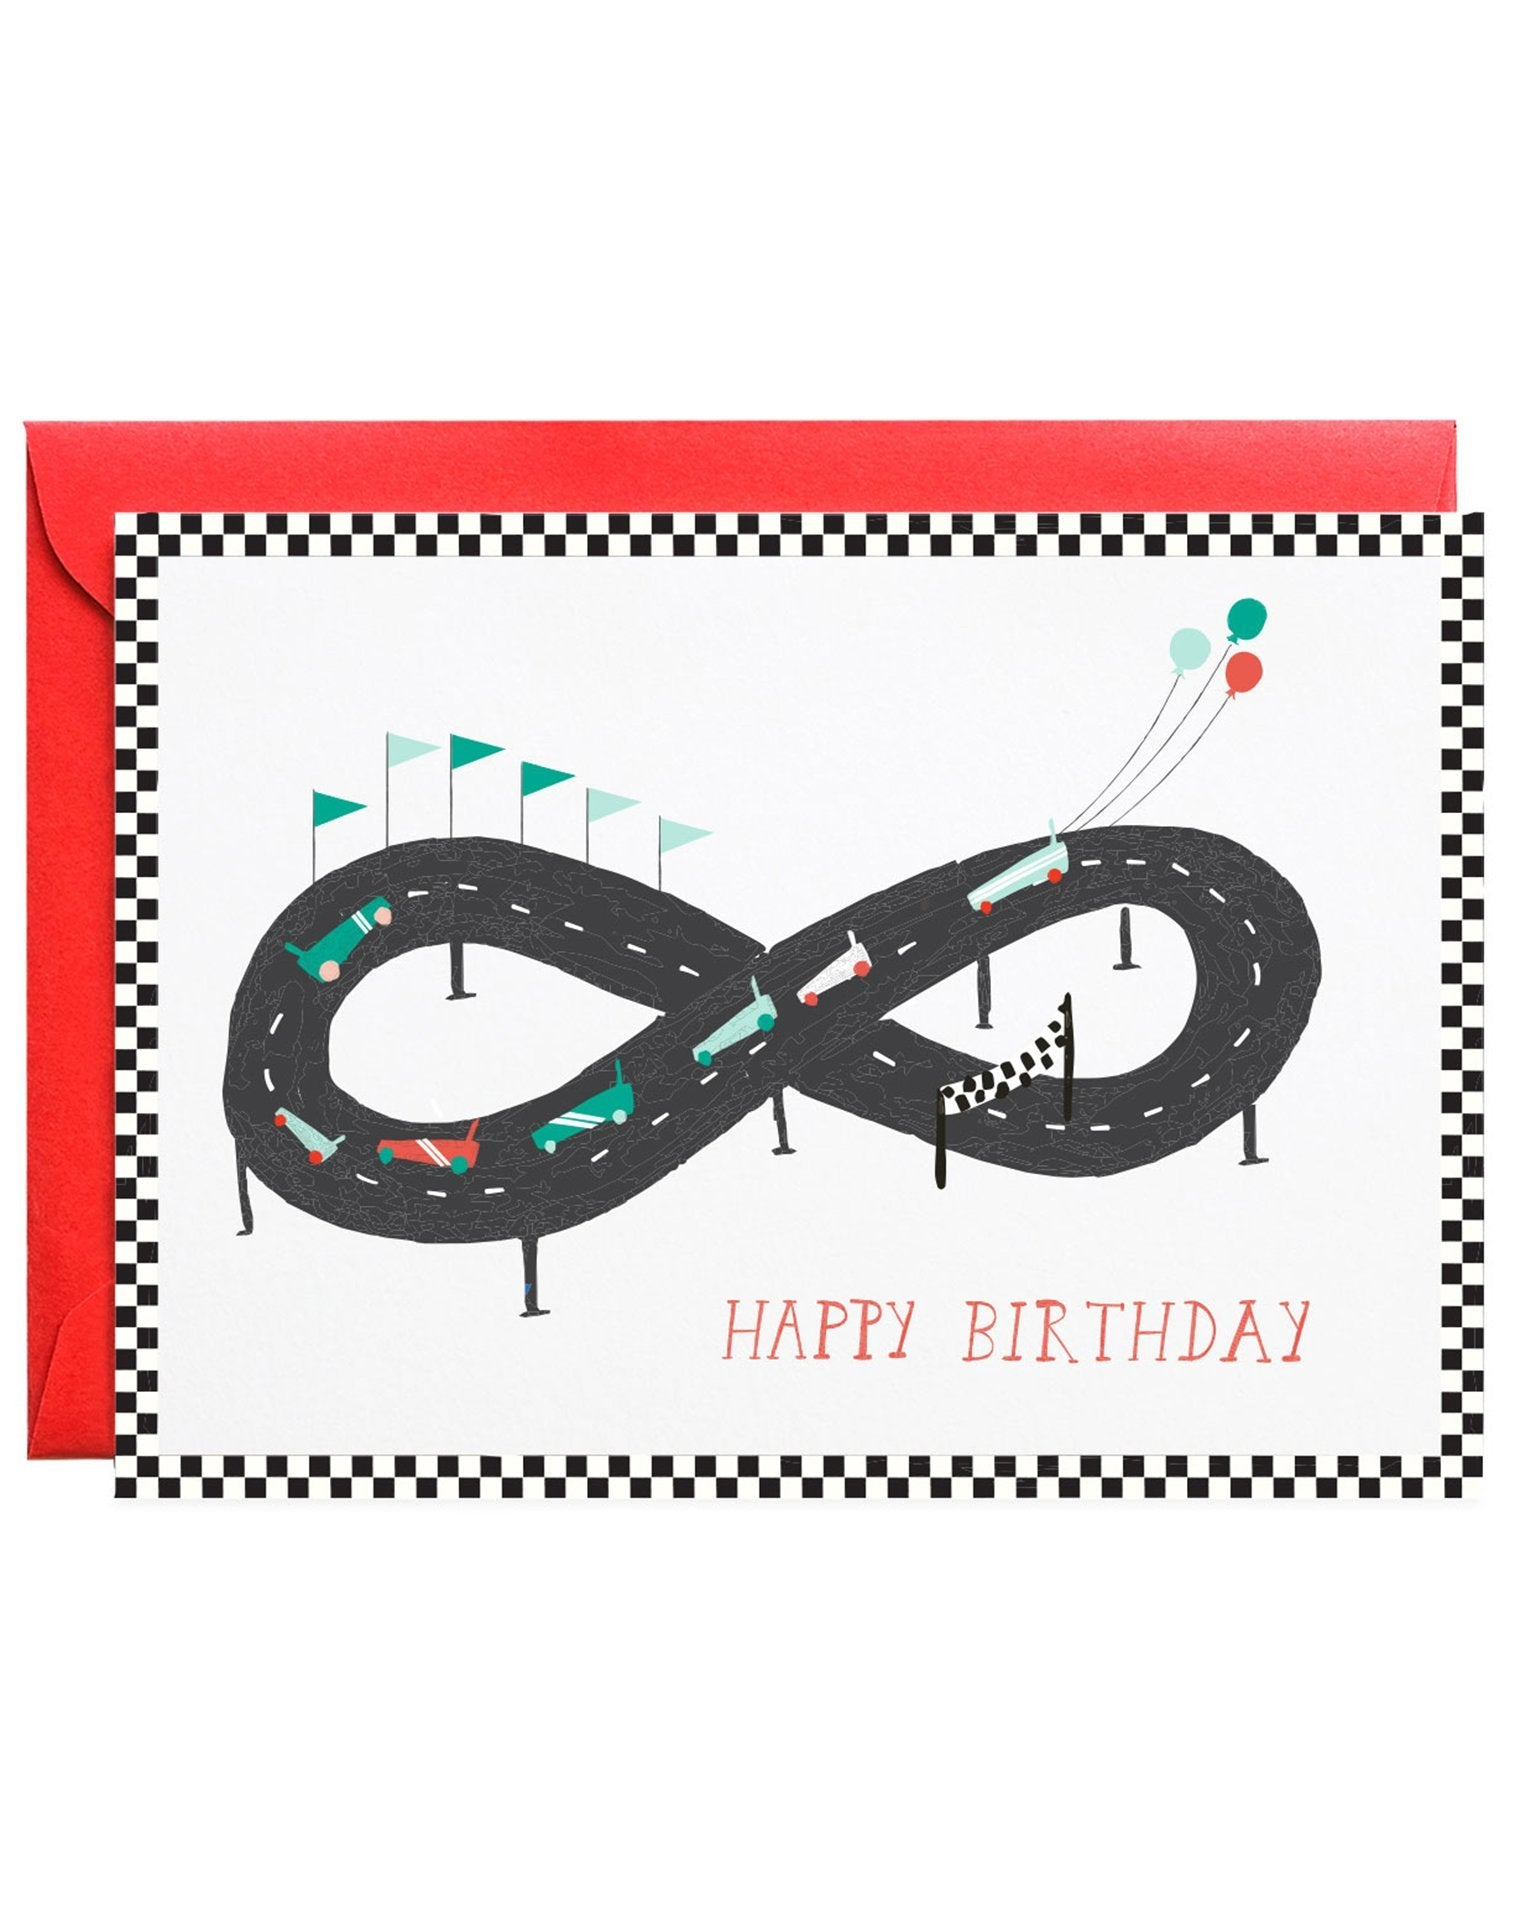 Little mr. boddington's studio paper+party start your engines card